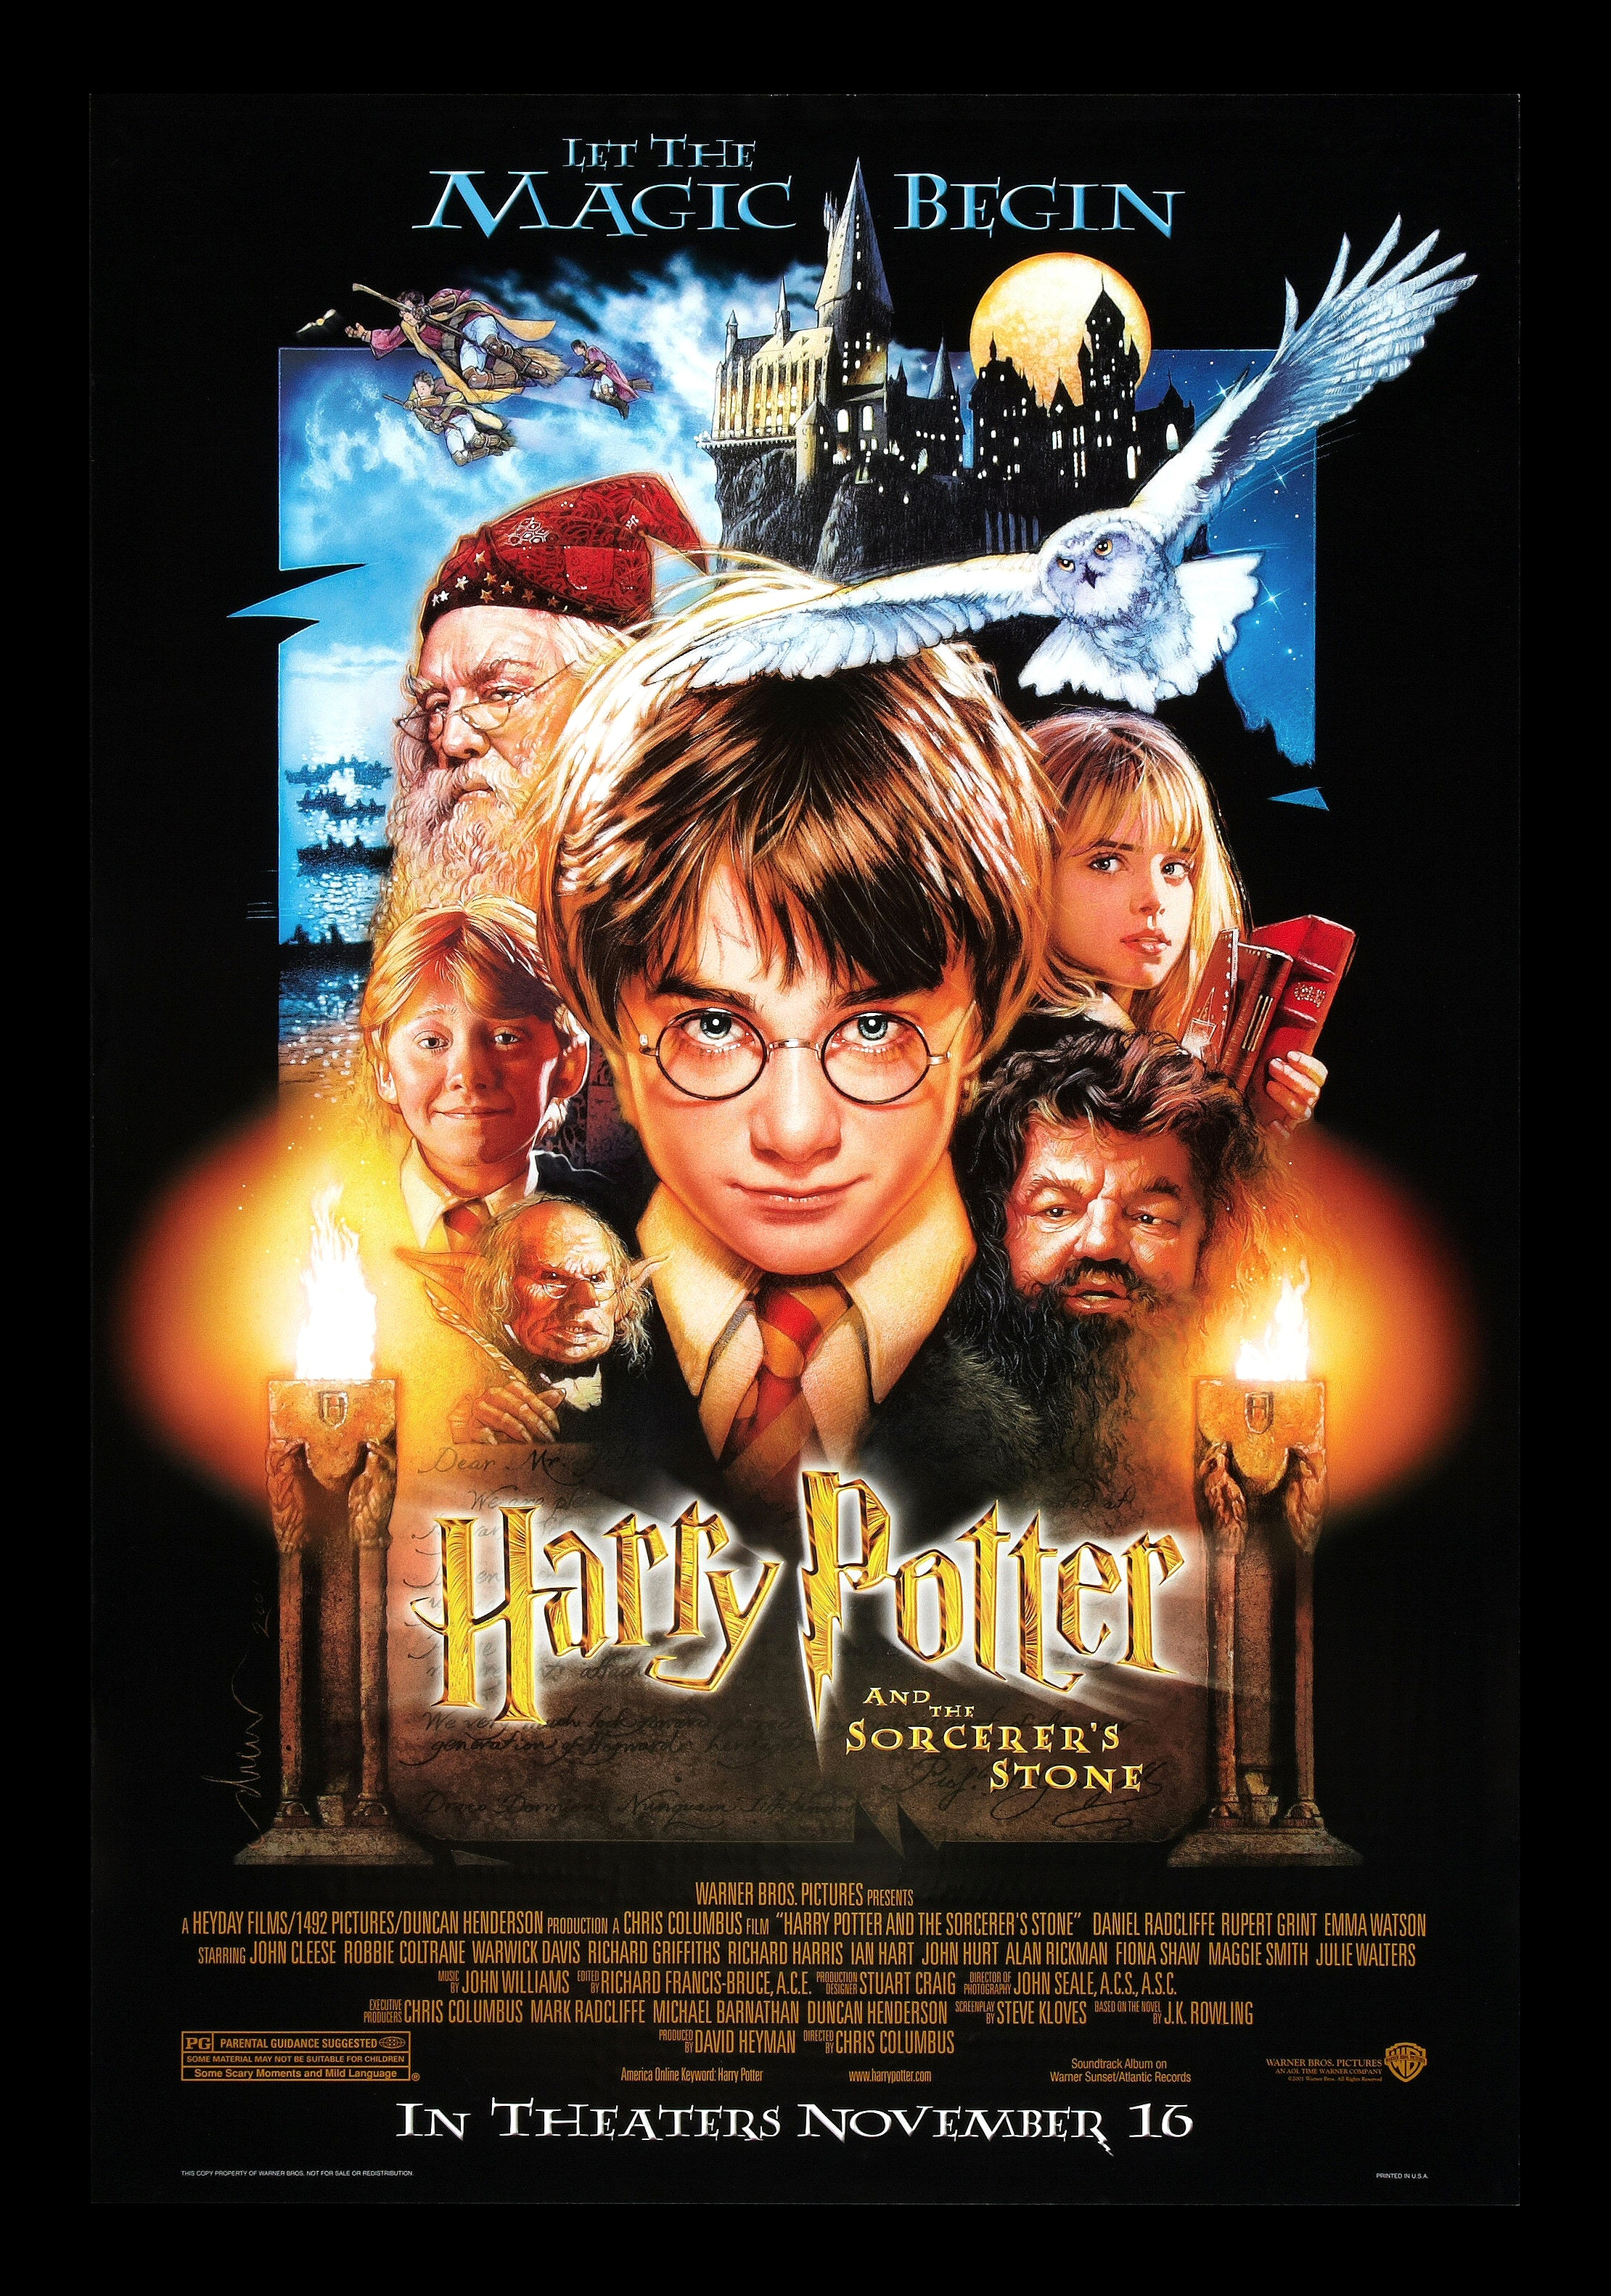 Harry potter and the sorcerer's stone short plot summary